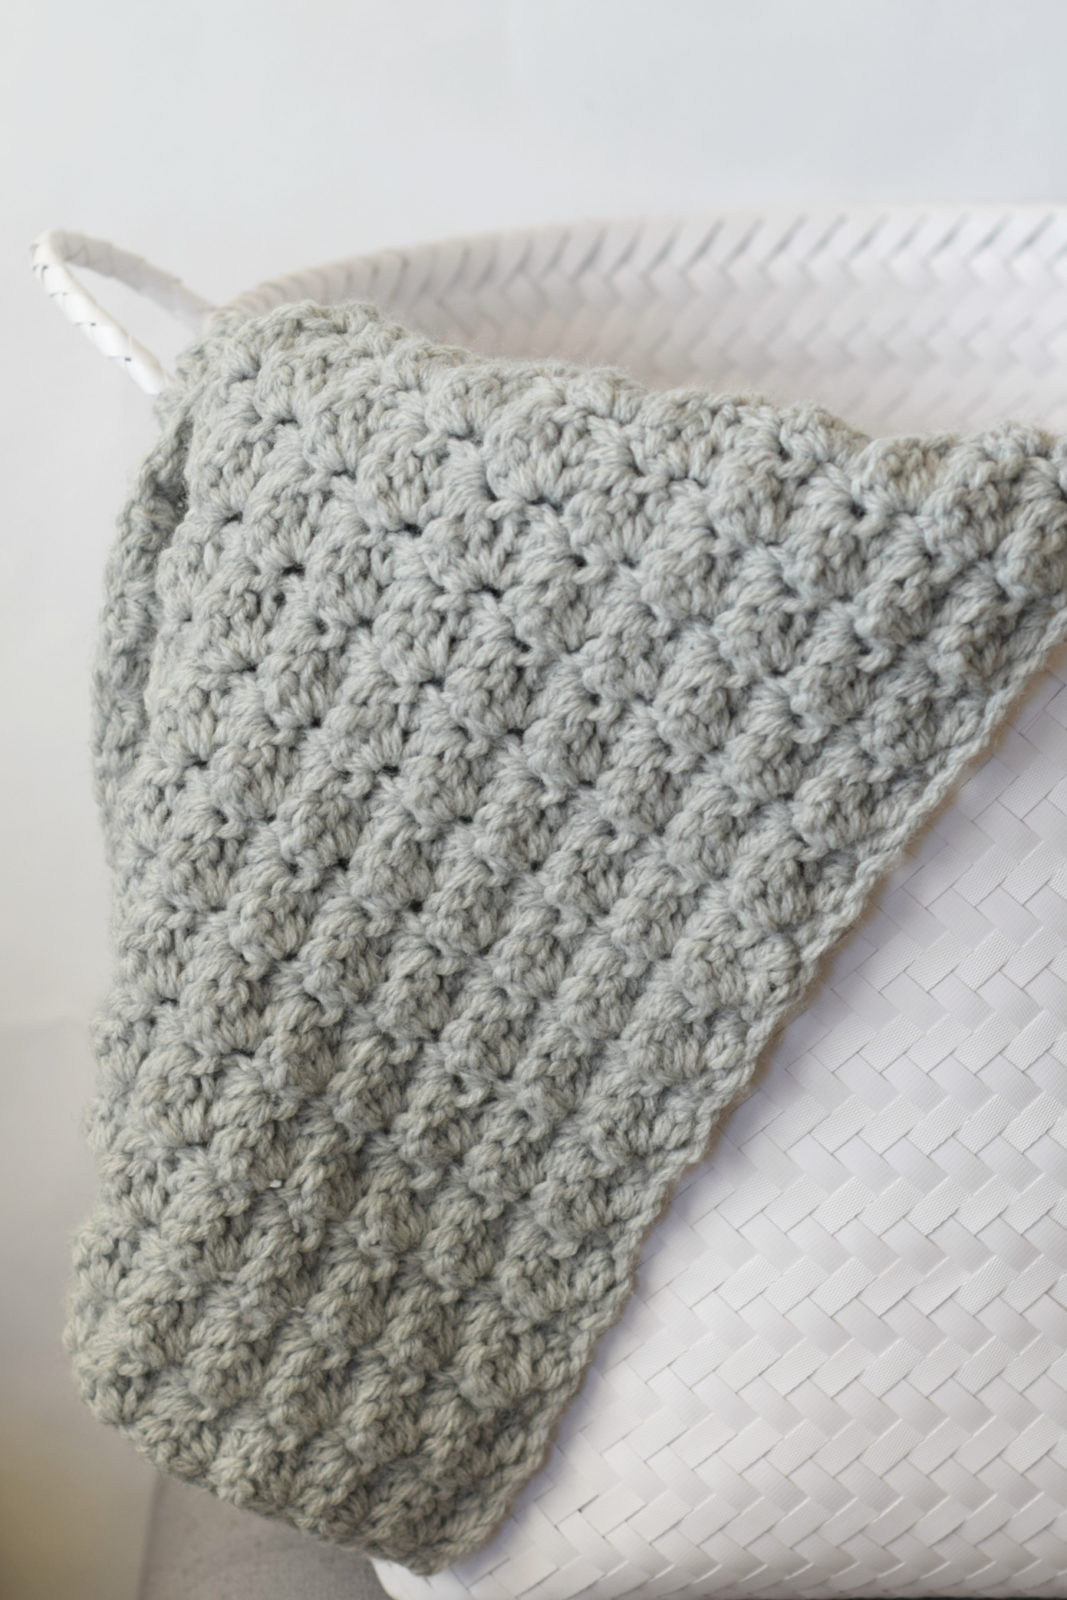 Easy Baby Blanket Patterns Inspirational Simple Crocheted Blanket Go to Pattern – Mama In A Stitch Of Superb 48 Ideas Easy Baby Blanket Patterns